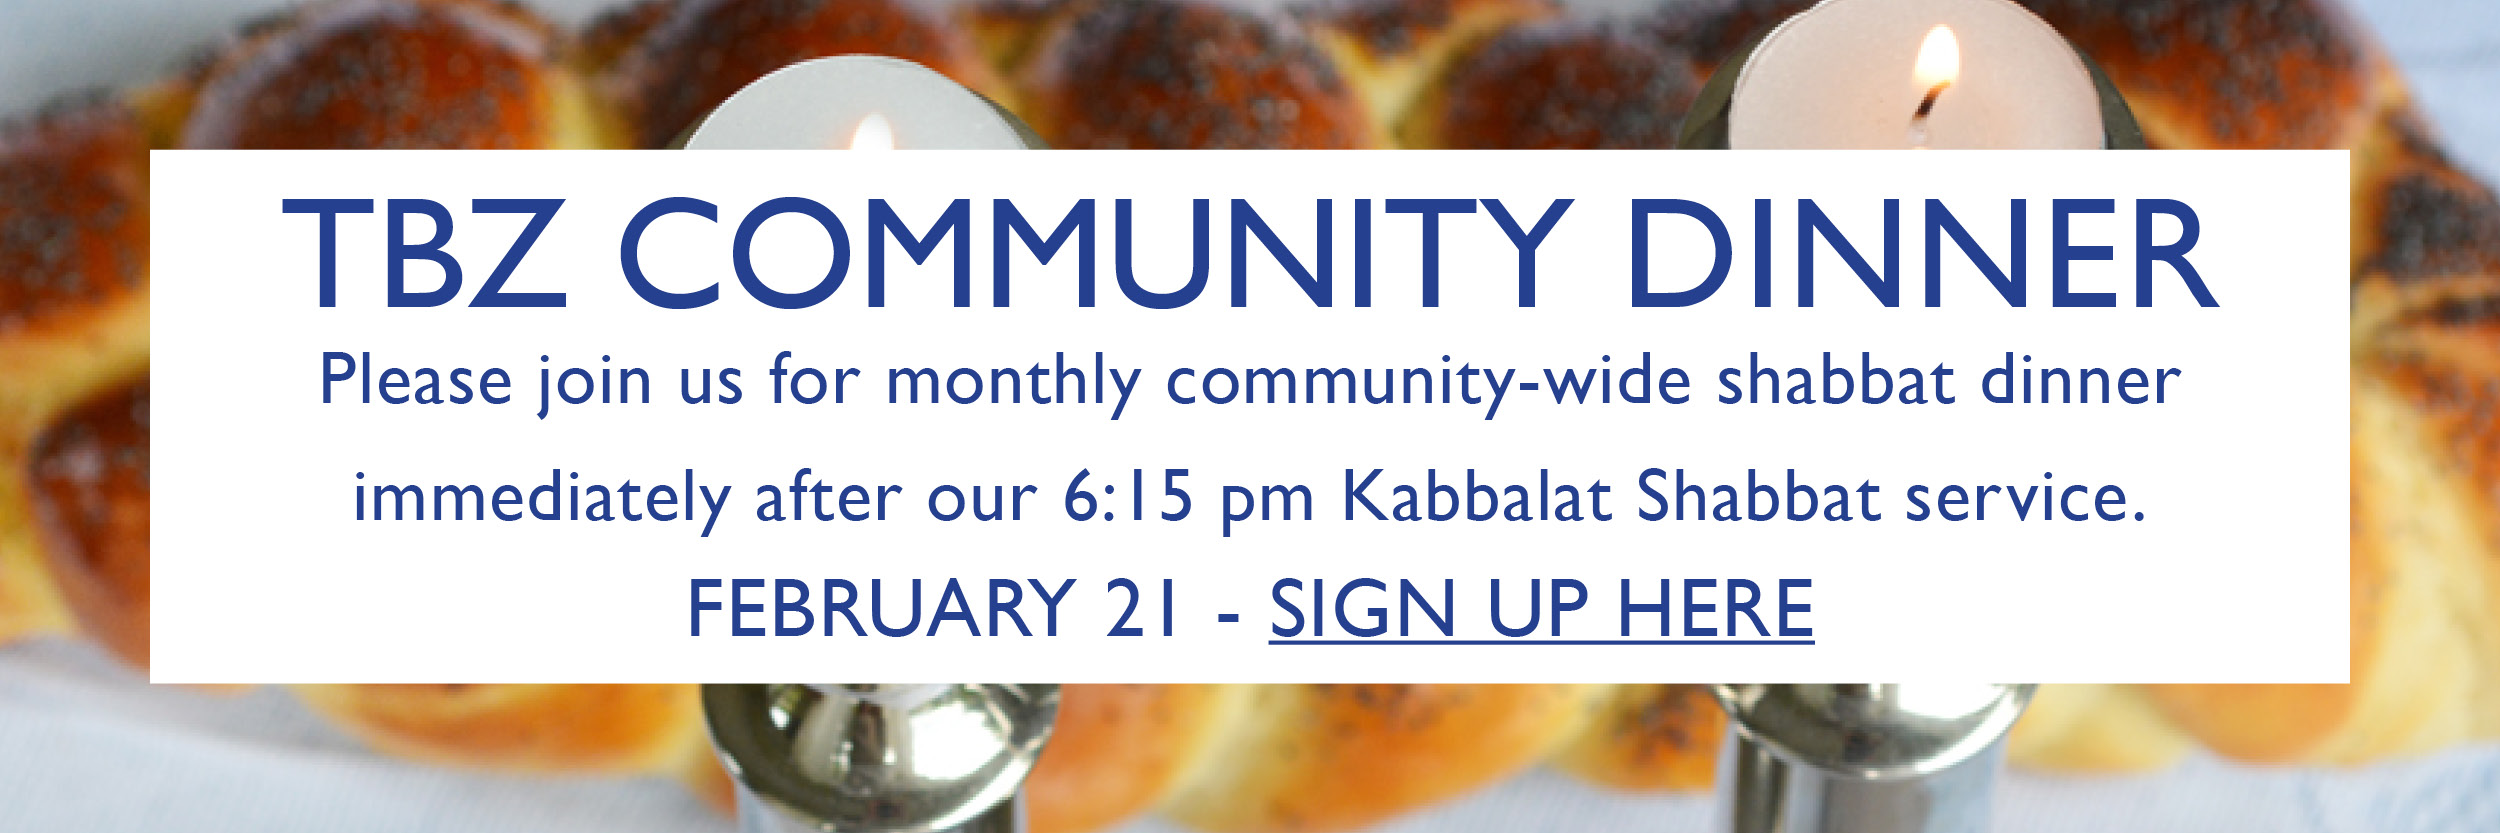 """<a href=""""https://www.tbzbrookline.org/form/communitydinnerfeb2020""""                                     target="""""""">                                                                 <span class=""""slider_title"""">                                     TBZ's next community dinner is February 21st                                </span>                                                                 </a>                                                                                                                                                                                       <span class=""""slider_description"""">Join together for a festive Friday night Shabbat dinner!</span>                                                                                     <a href=""""https://www.tbzbrookline.org/form/communitydinnerfeb2020"""" class=""""slider_link""""                             target="""""""">                             REGISTER TO DINE WITH US                            </a>"""